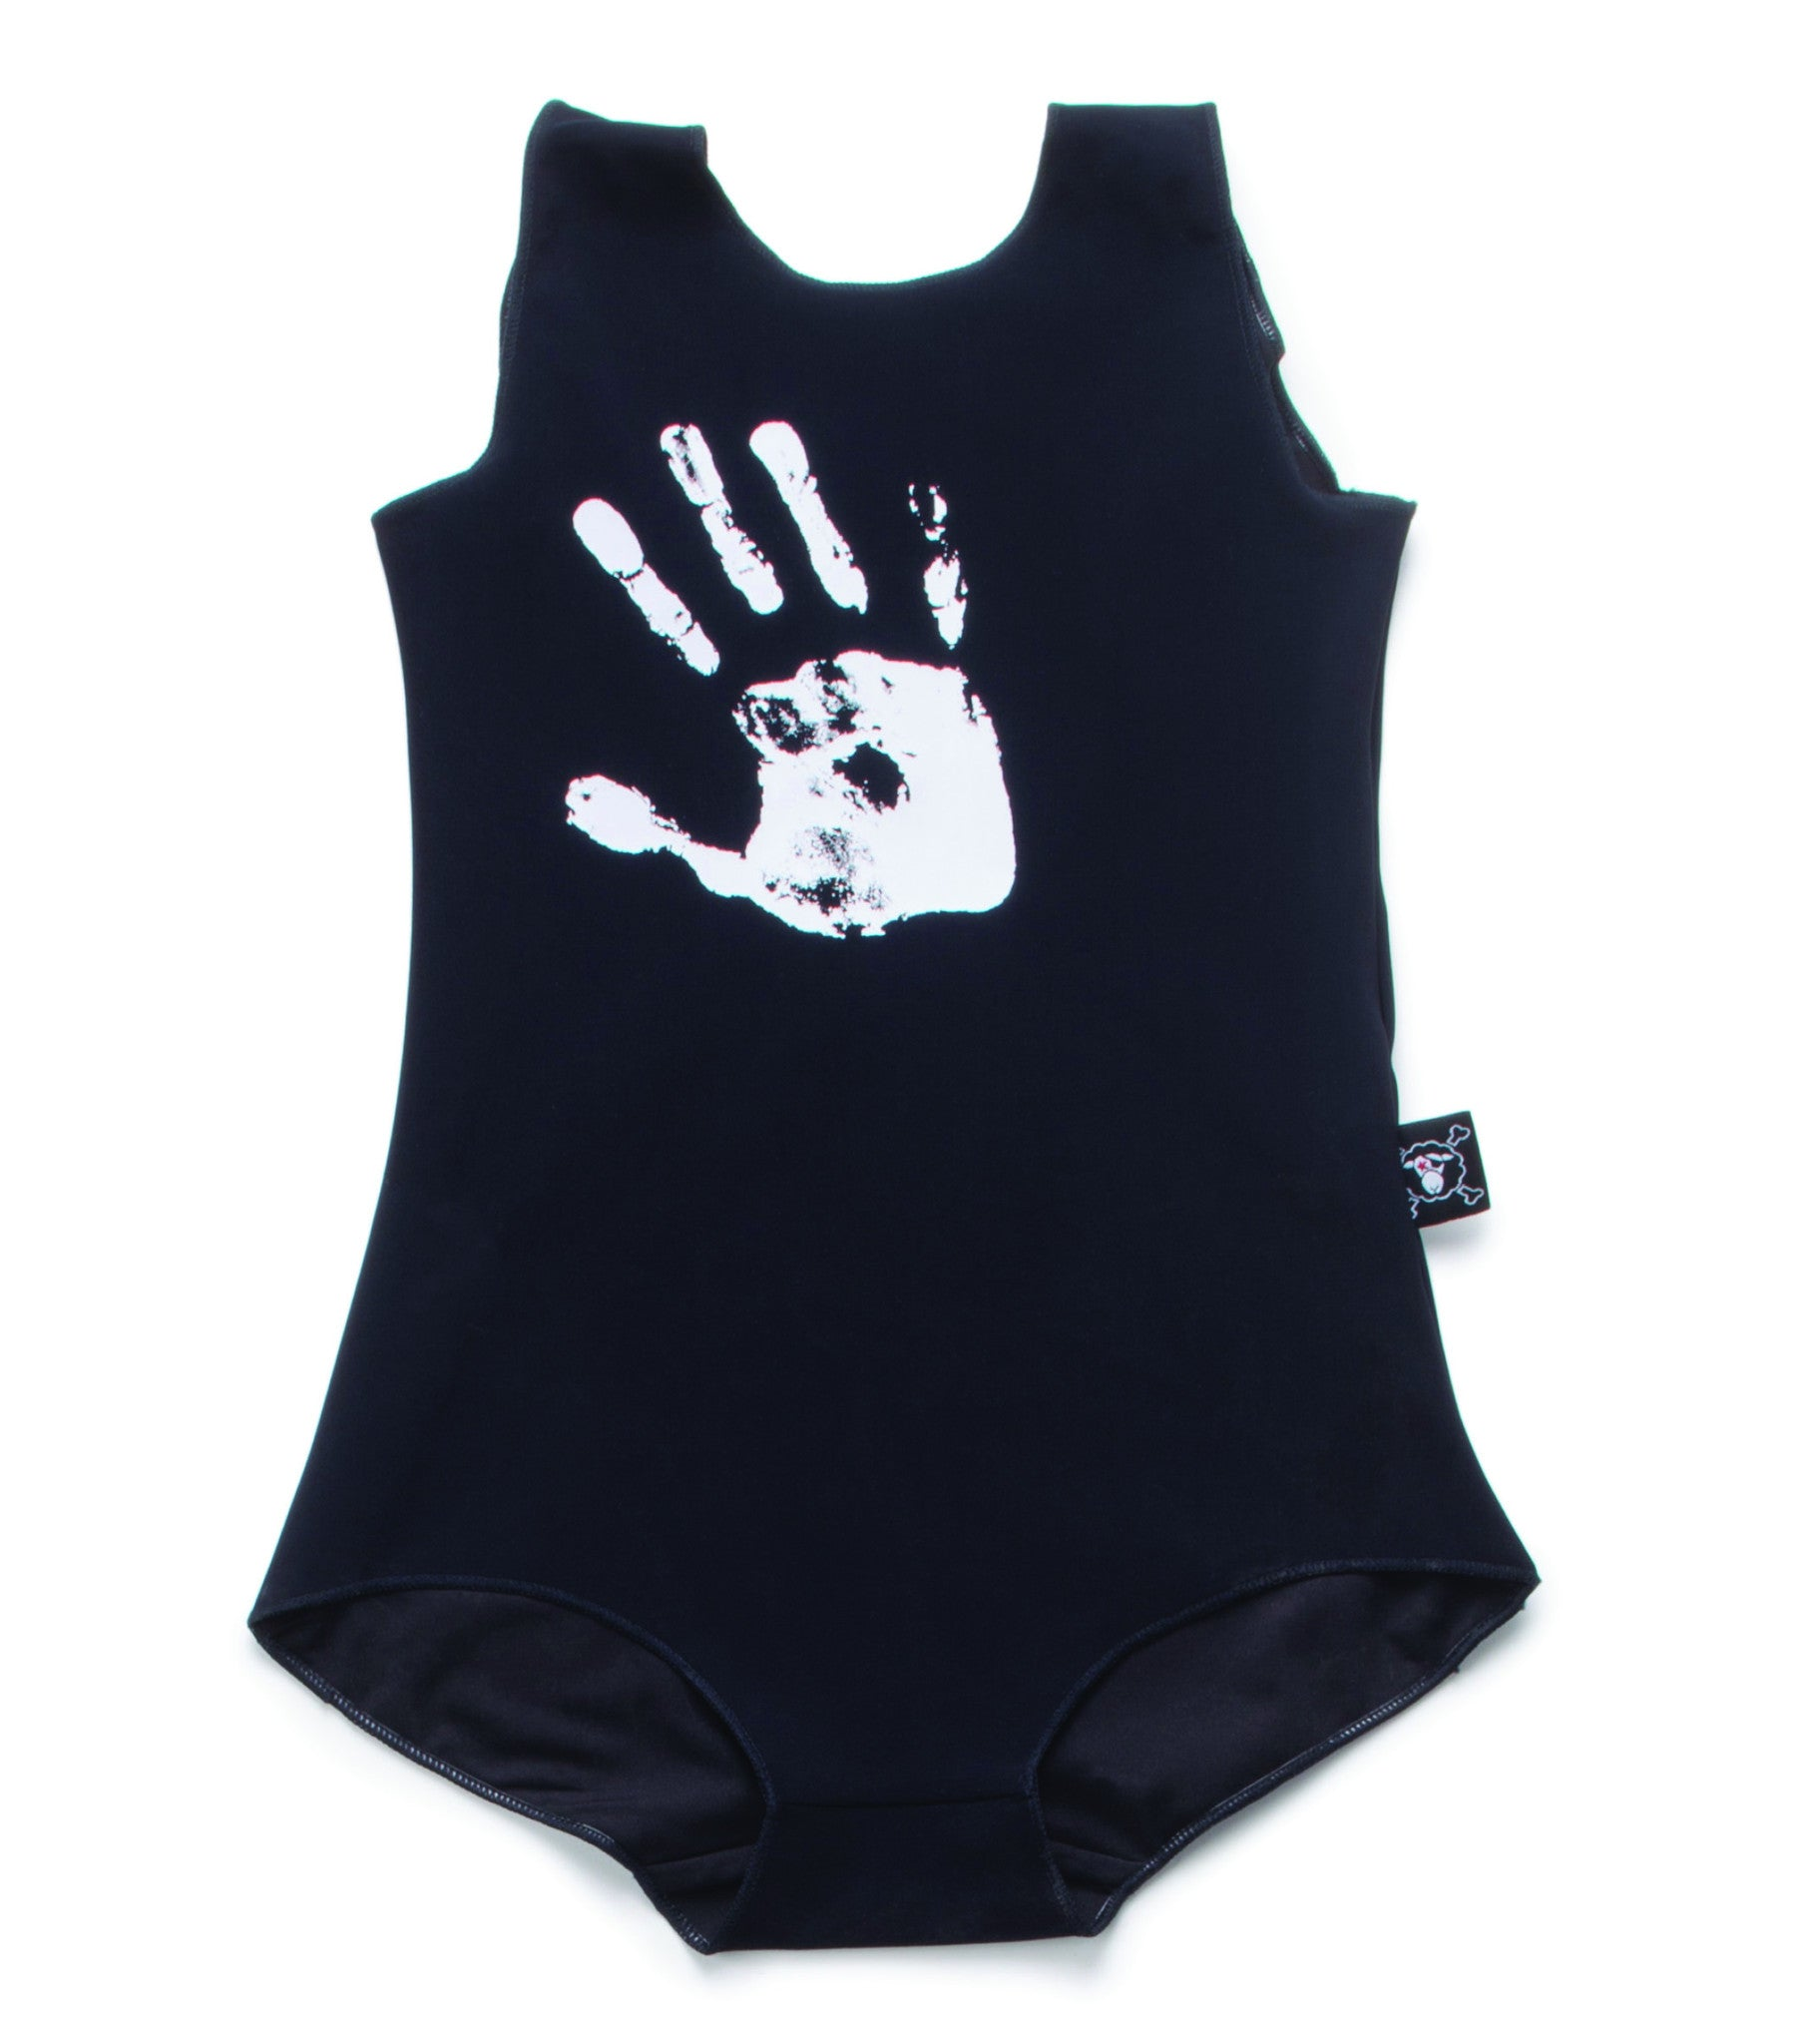 NUNUNU Black Hand Print Swimsu - Ladida